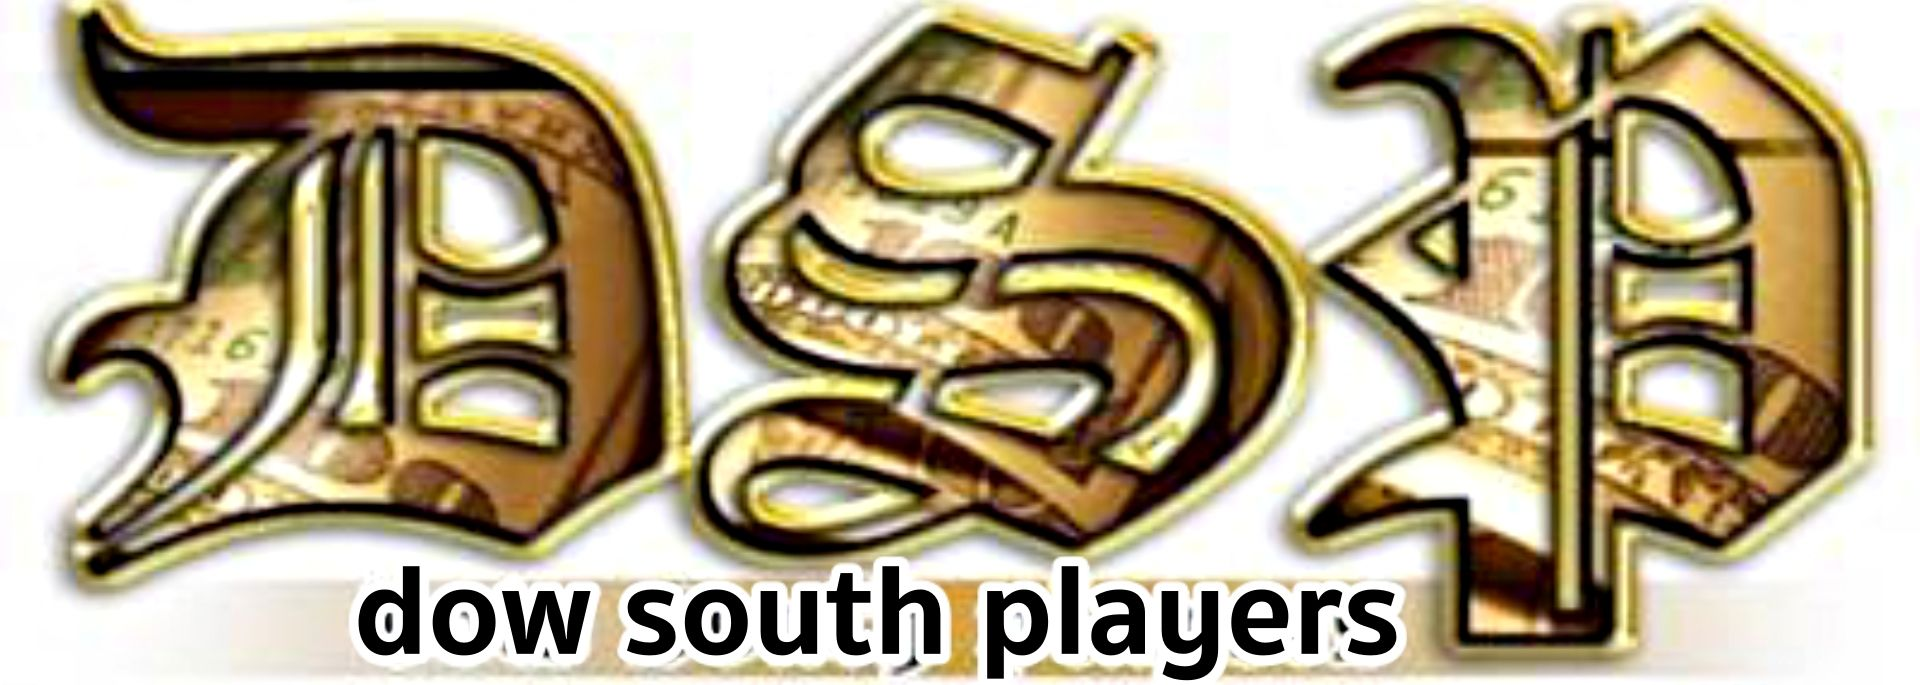 Dow South Players Films channel